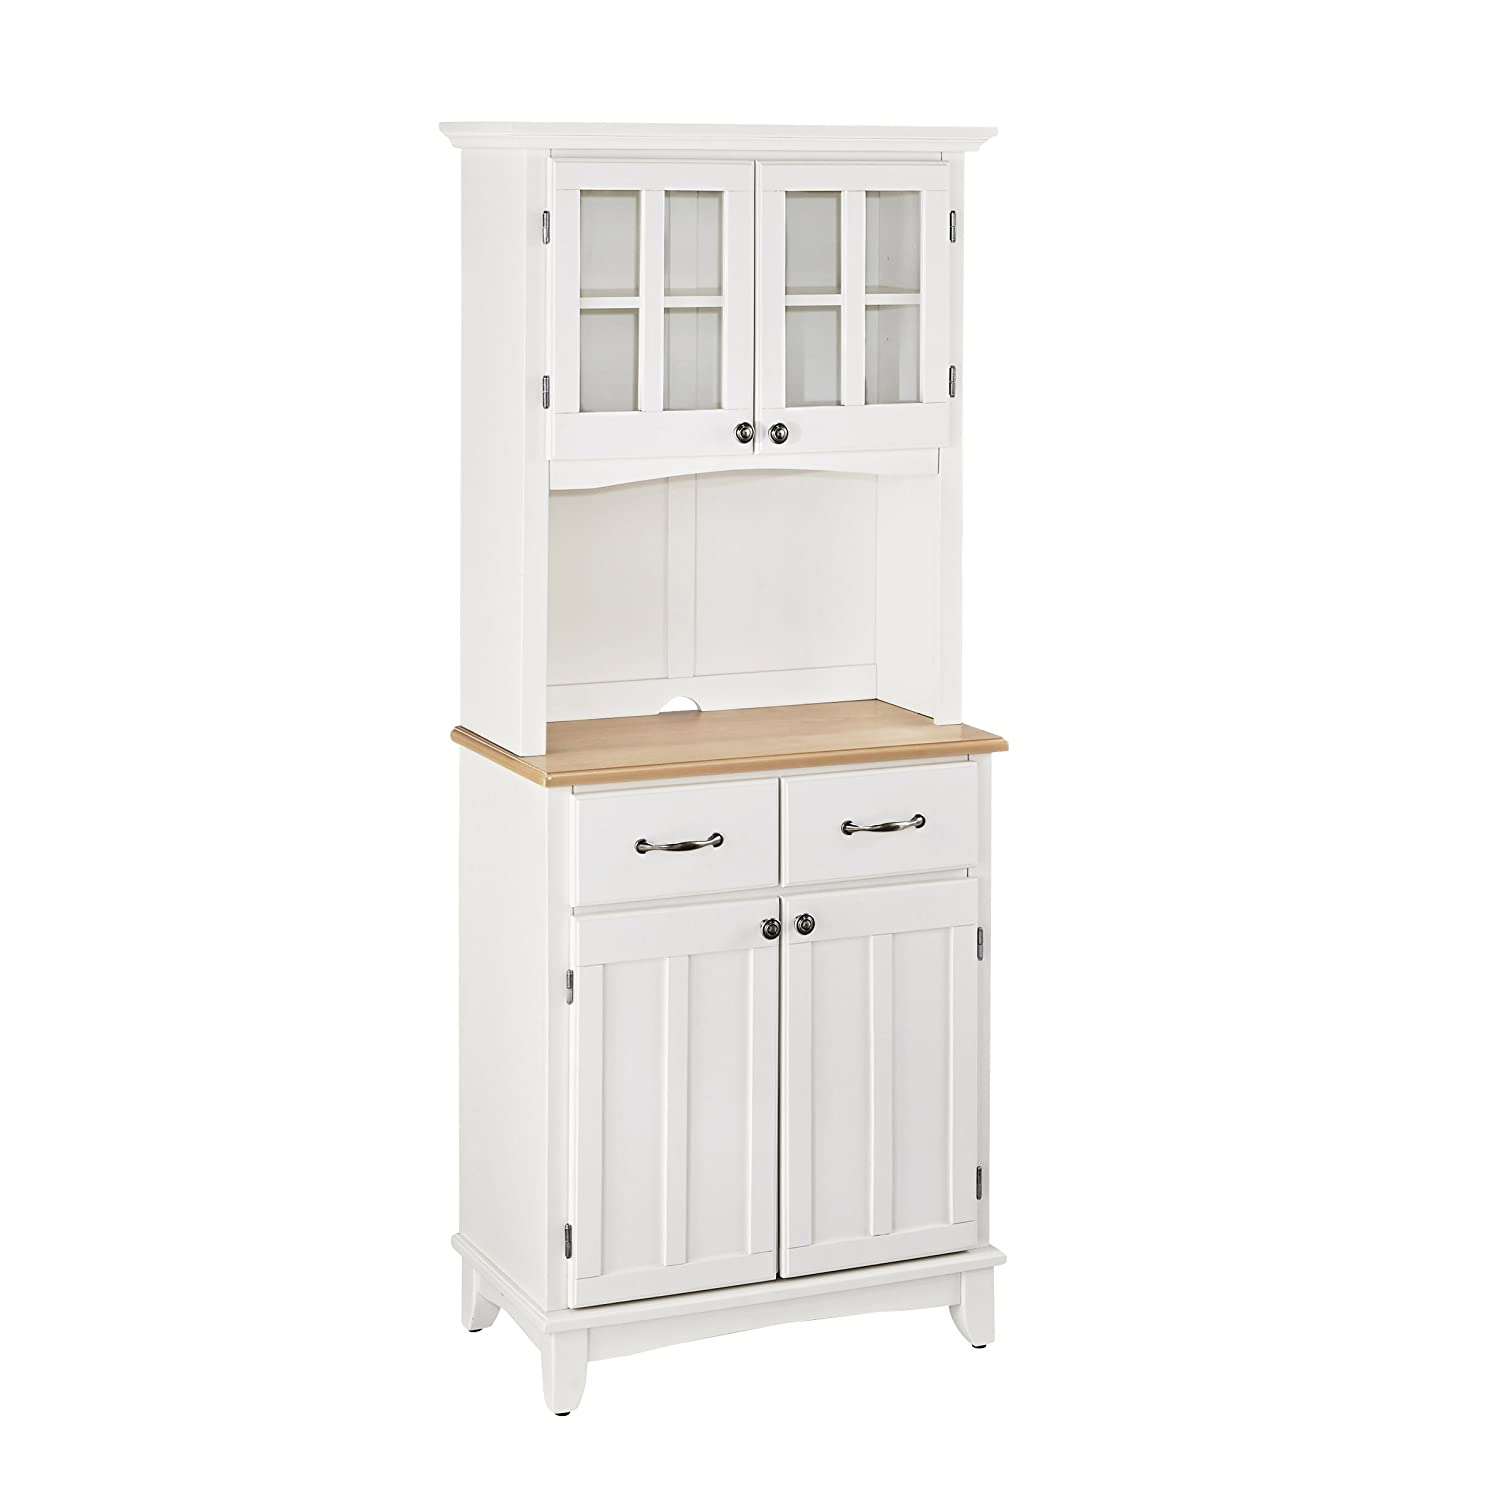 Home Styles 5001-0021-12 Buffet of Buffet 5001 Series Wood Top Buffet Server and Hutch, White Finish